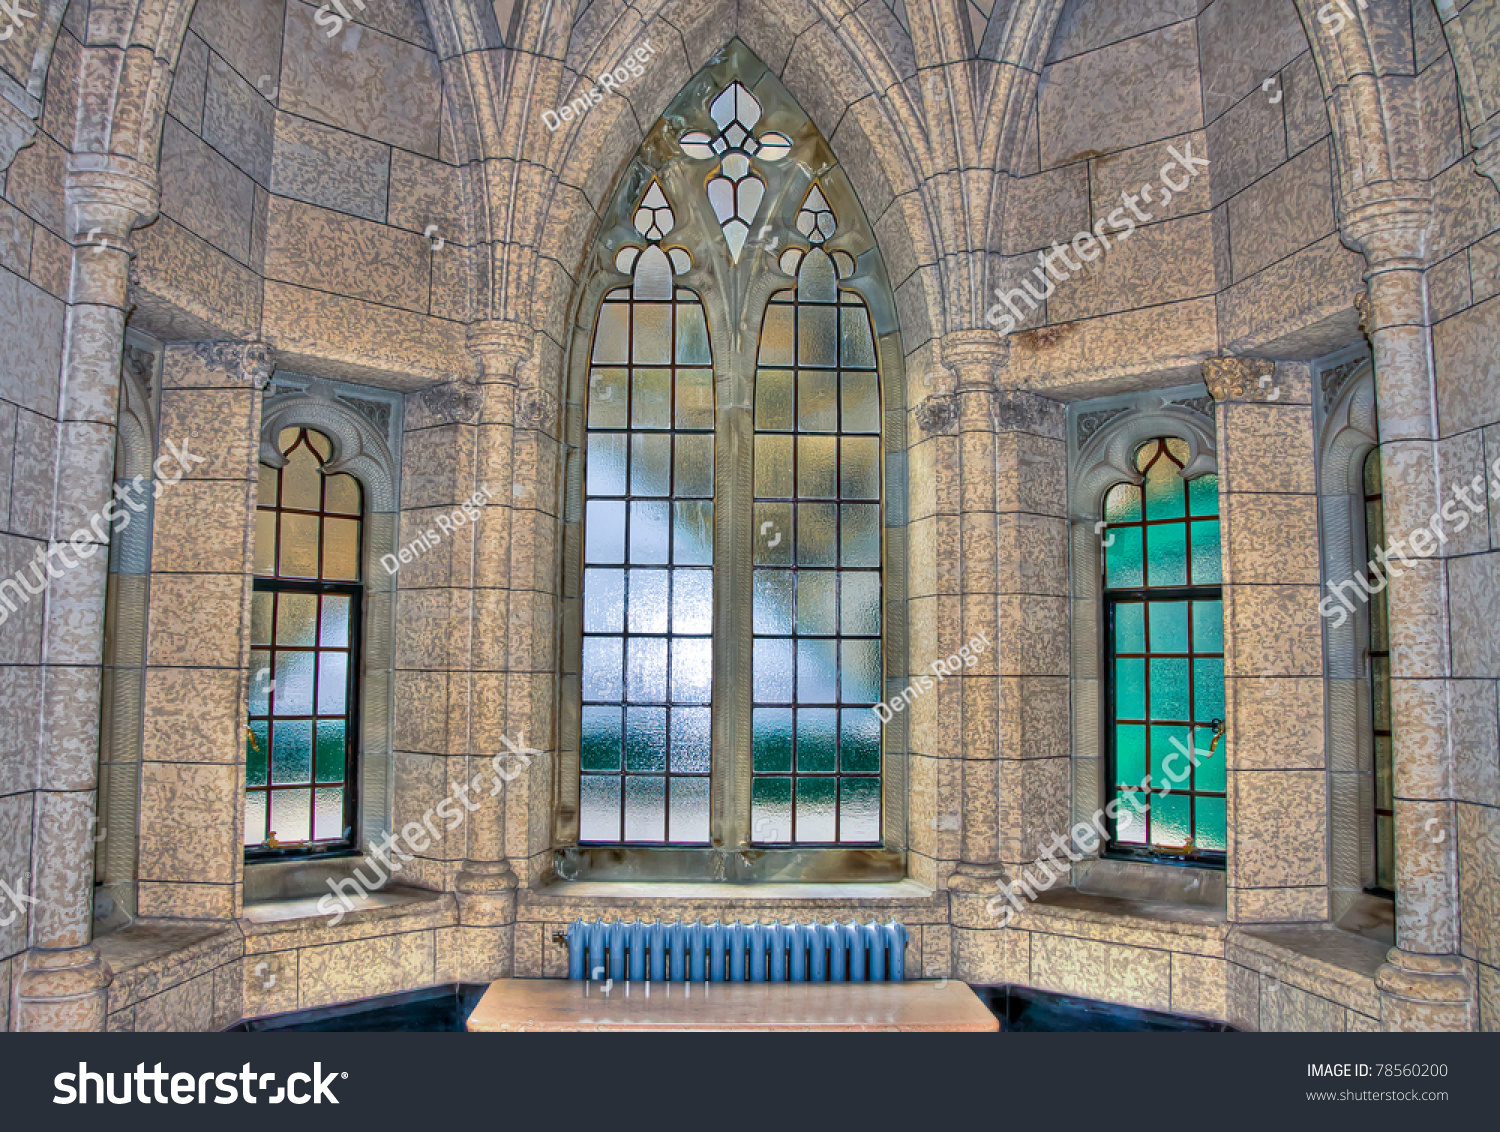 Hdr Image Old Architectural Windows Building Stock Photo - Building architectural windows